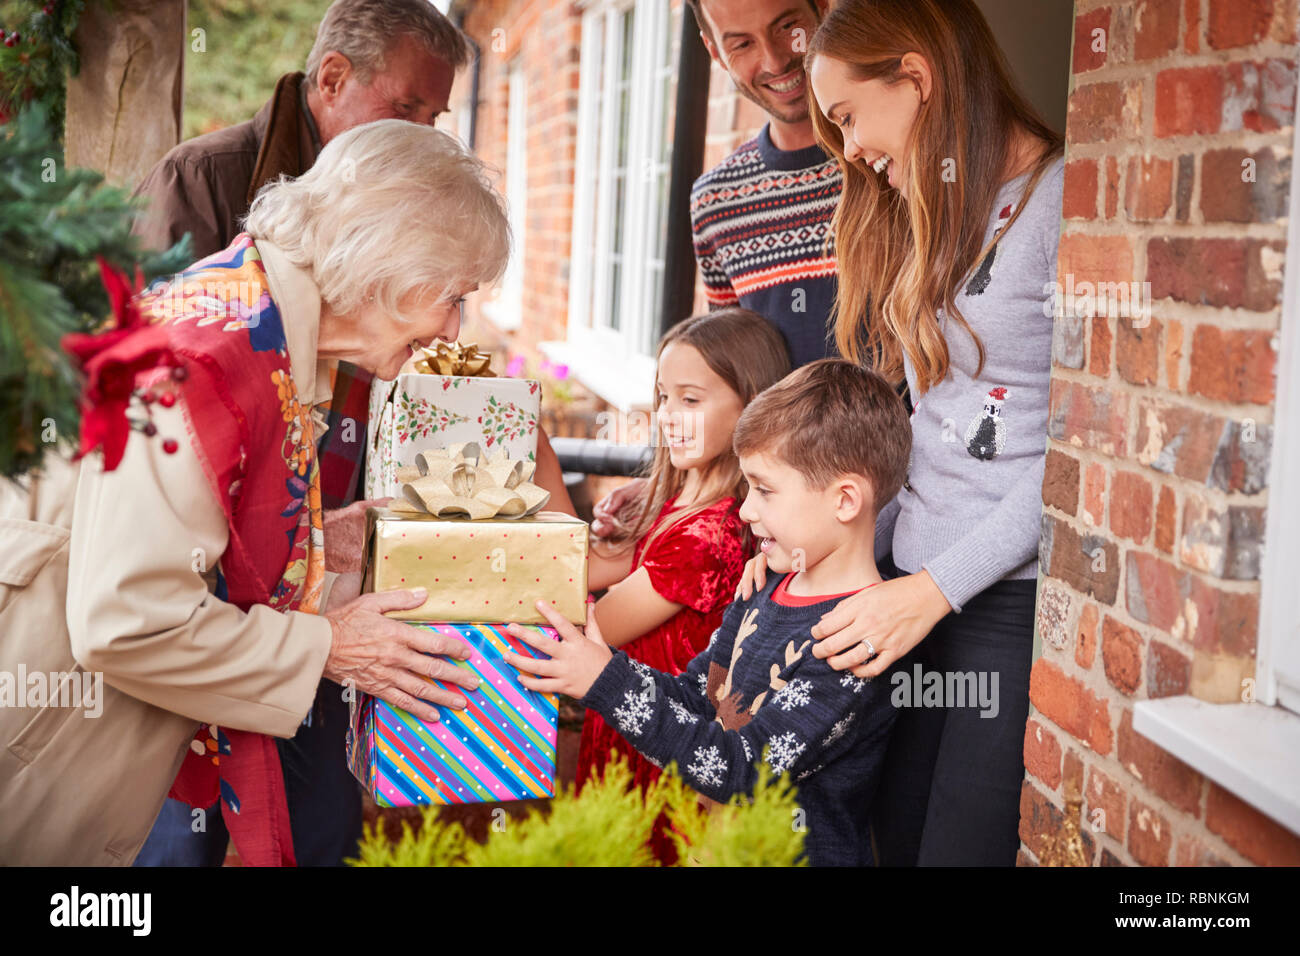 Grandparents Being Greeted By Family As They Arrive For Visit On Christmas Day With Gifts - Stock Image